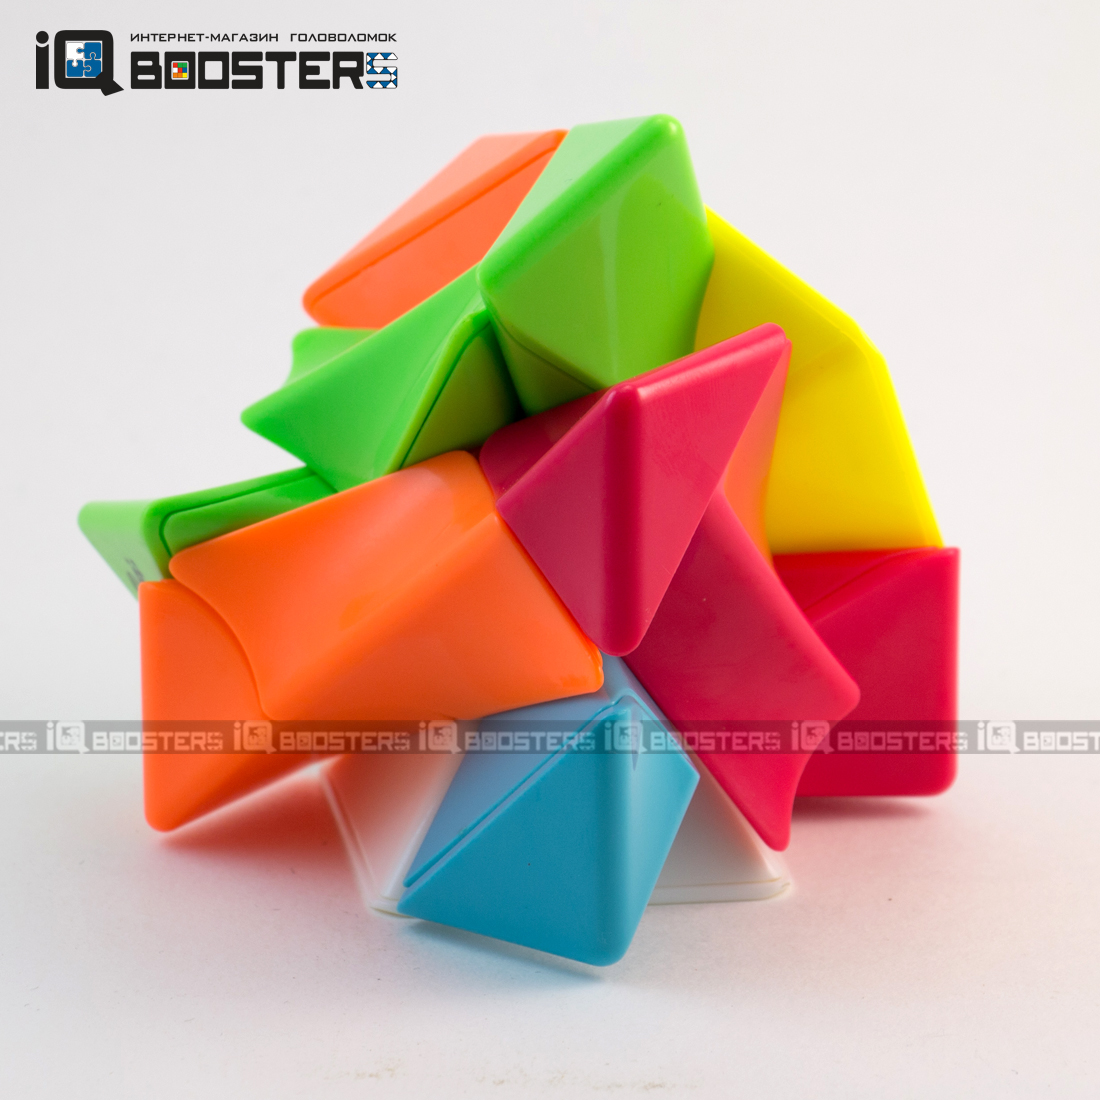 mfg_twisty_skewb_c4_1